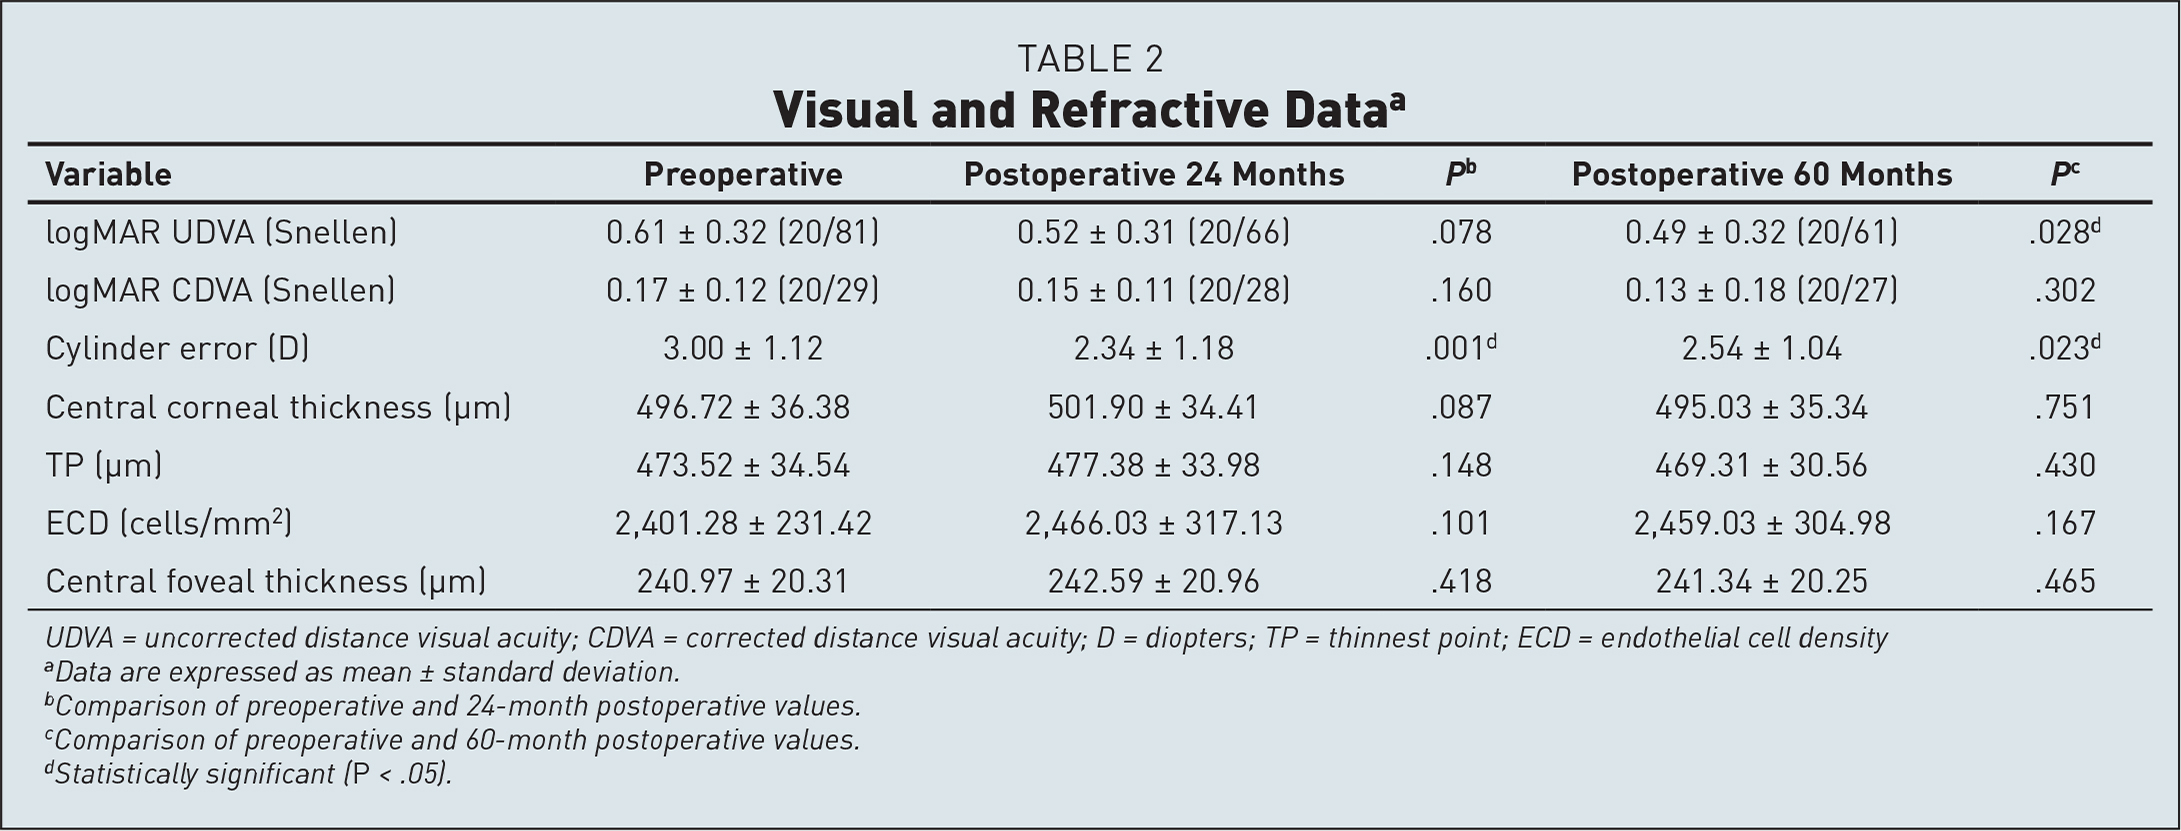 Visual and Refractive Dataa